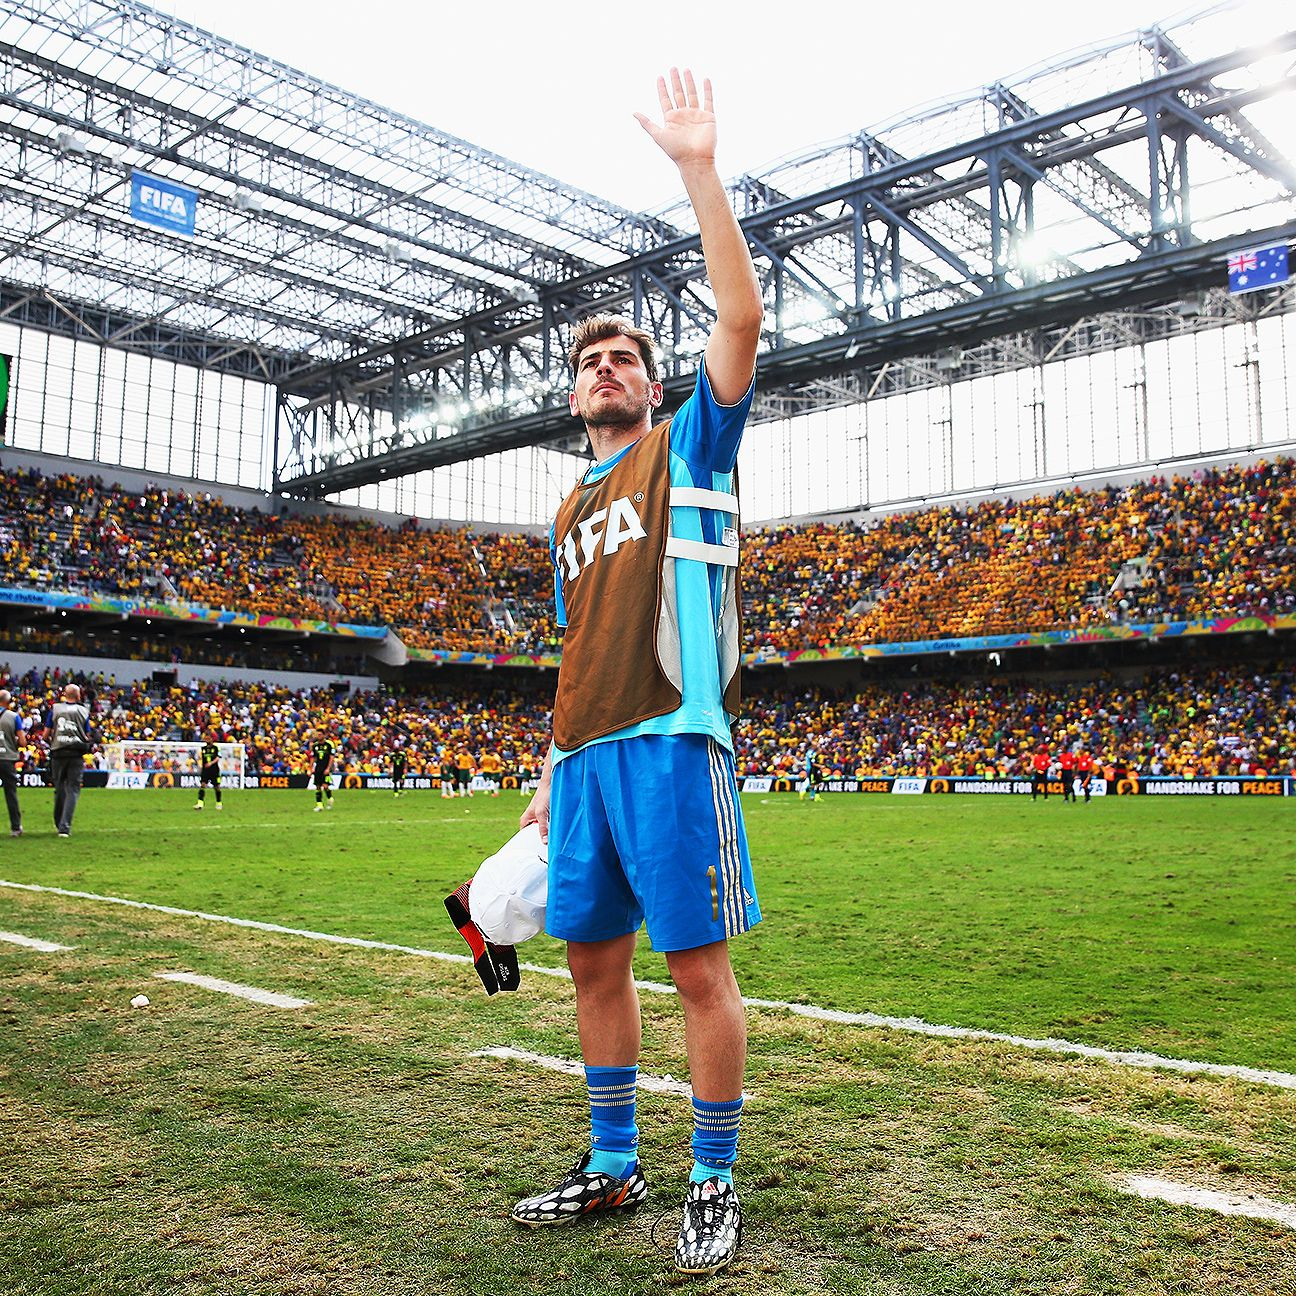 Iker Casillas' situation differs from Xavi, but he too faces a serious fight to remain relevant.